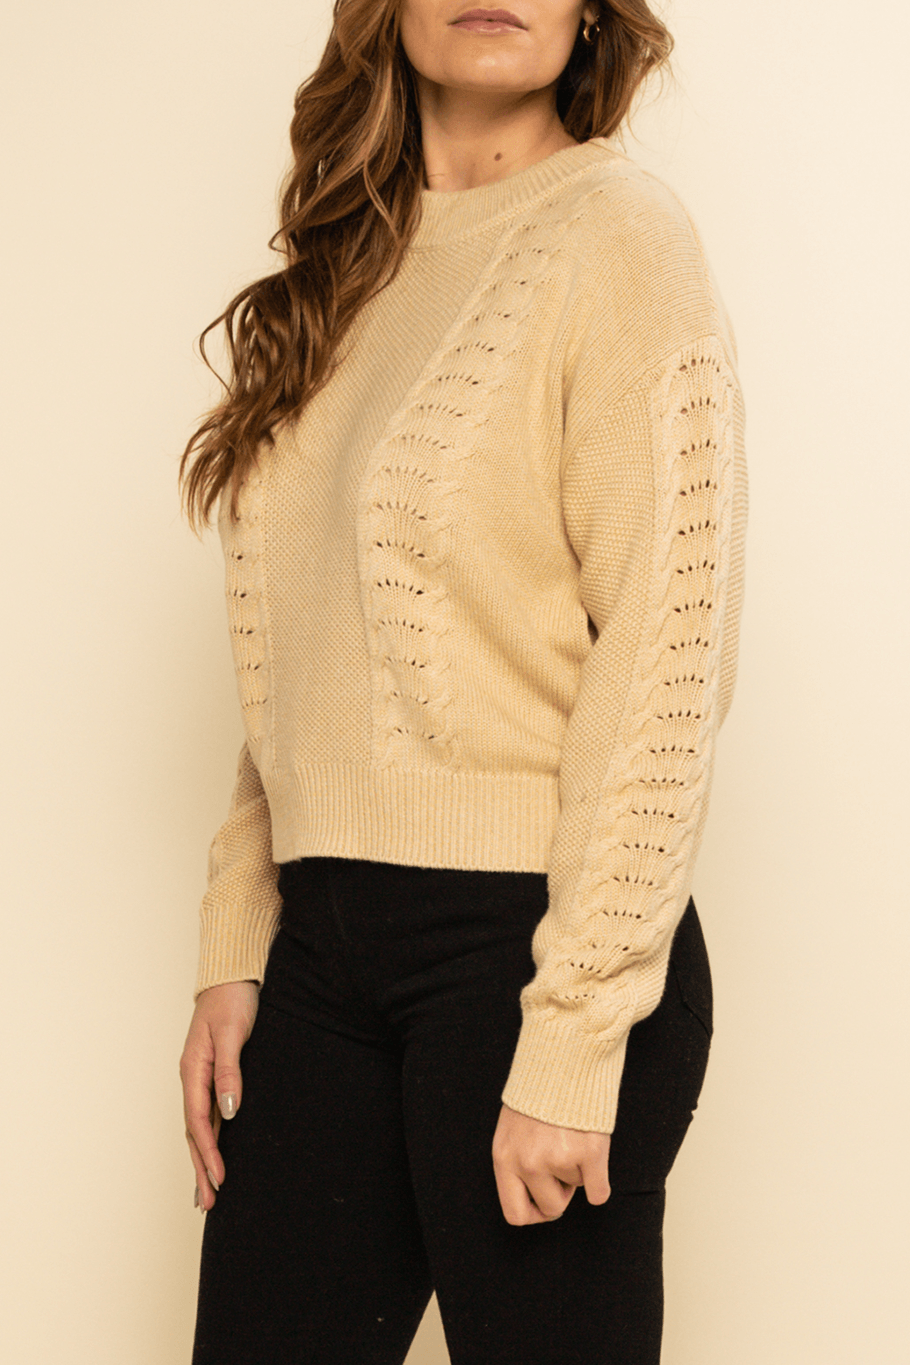 Saratoga Sweater - Latte - Shore